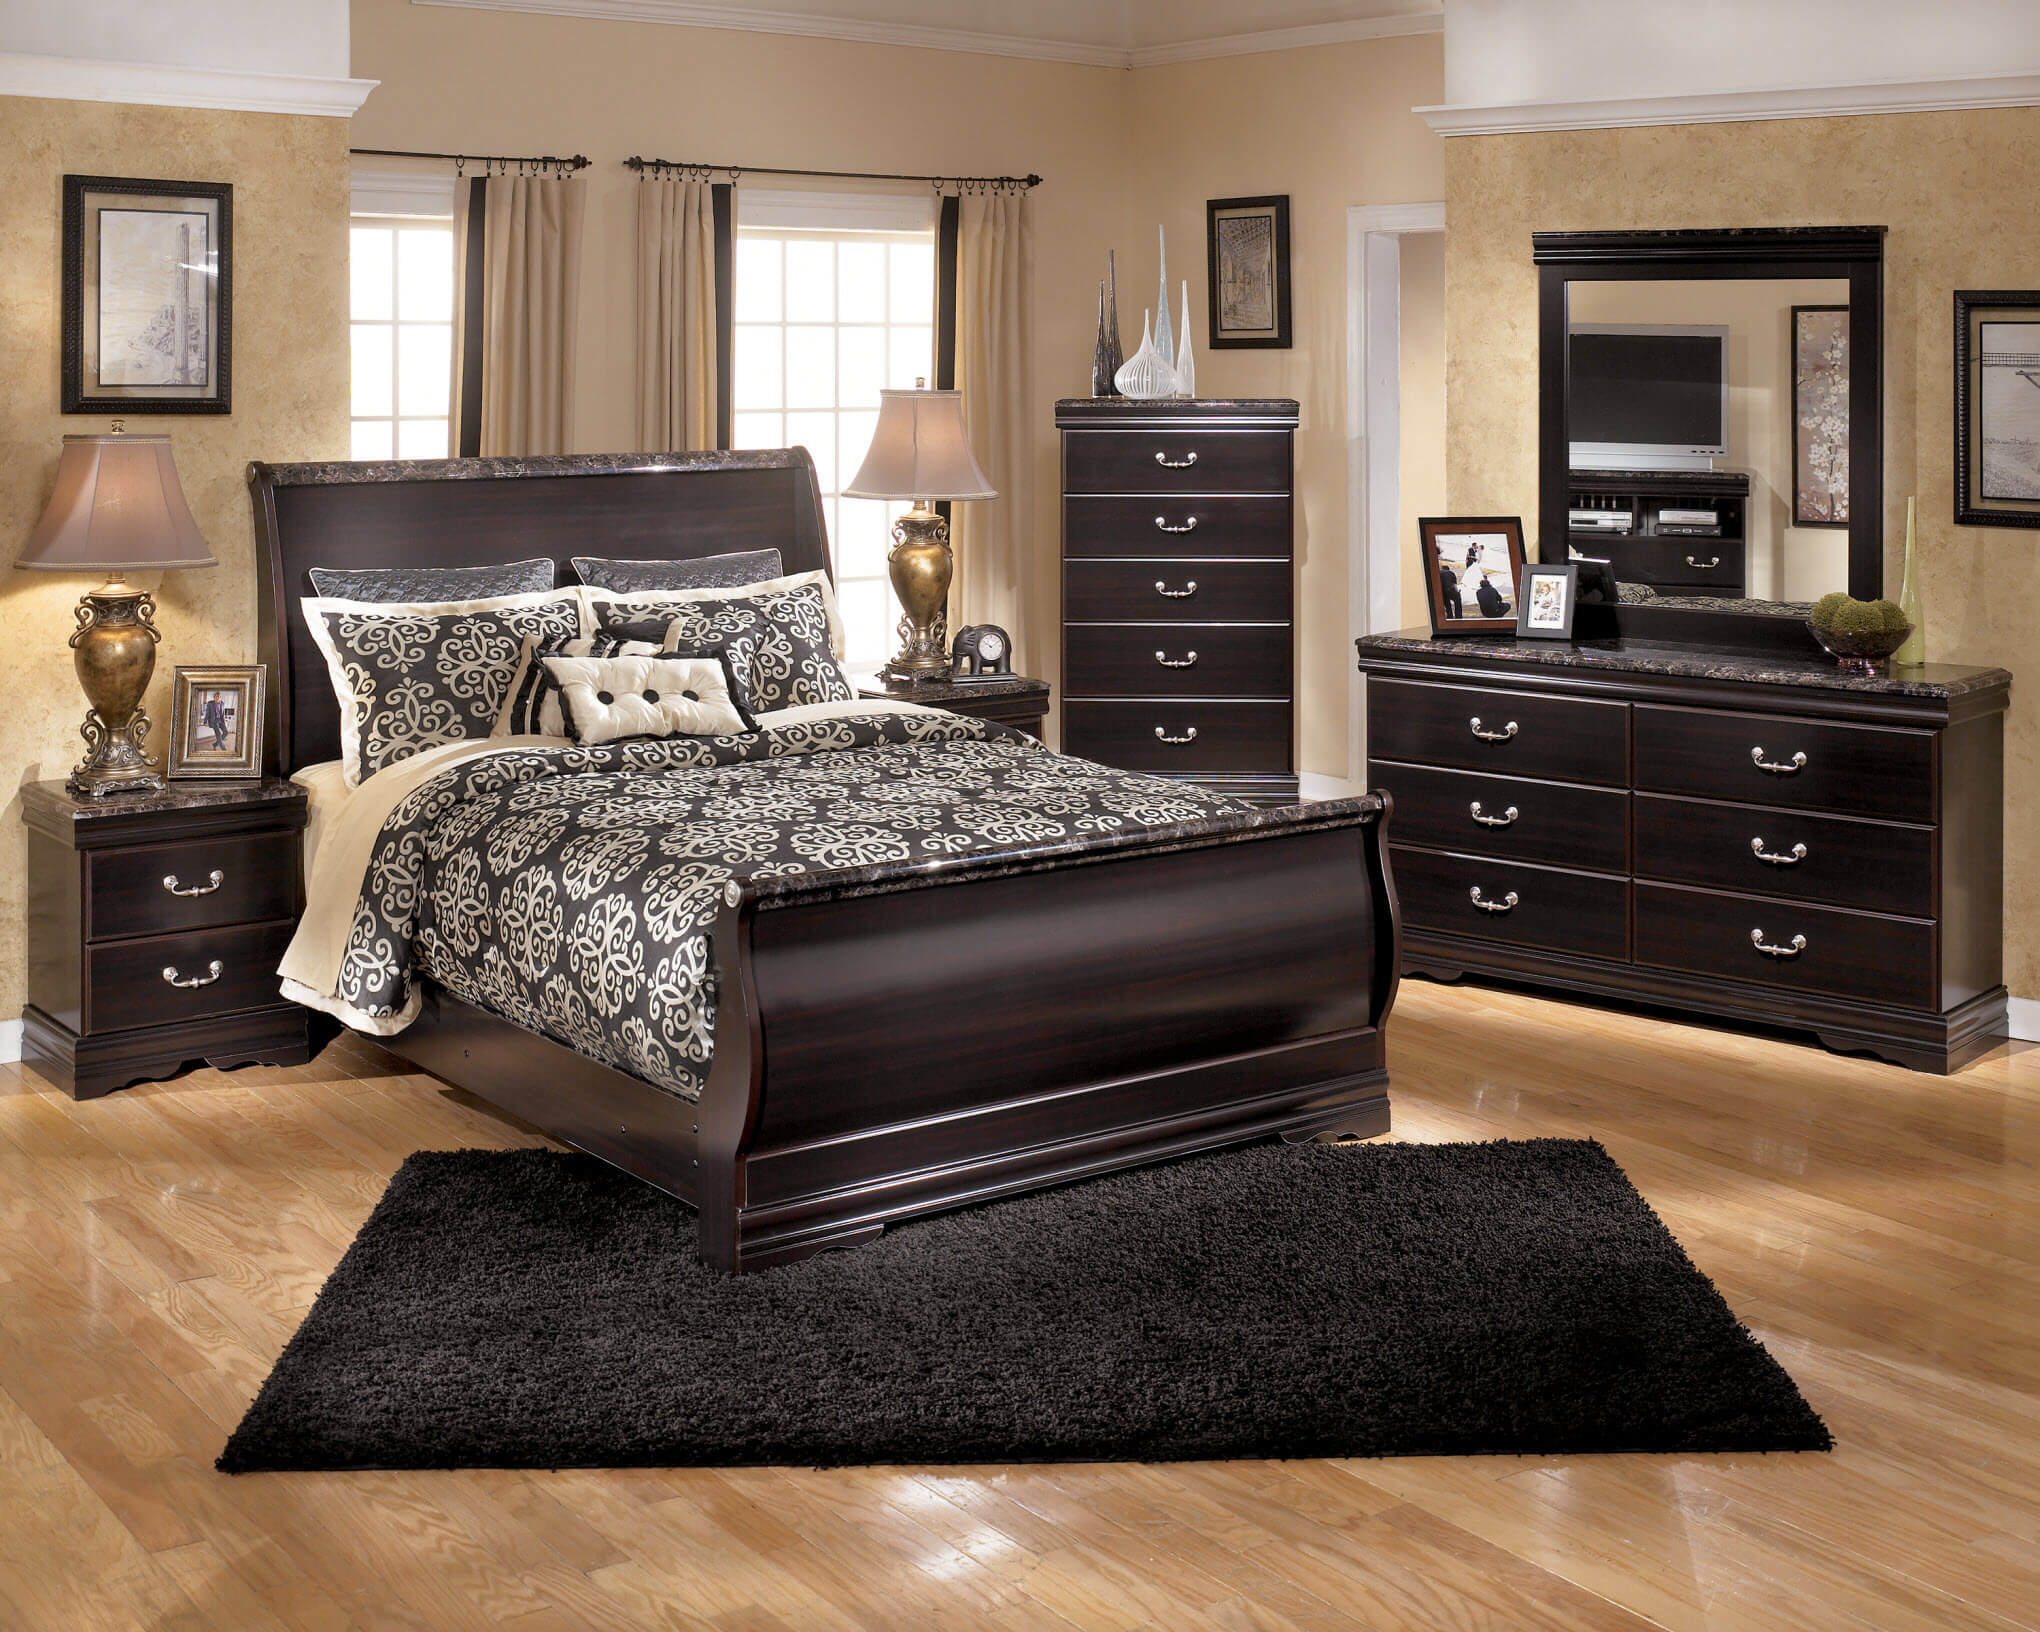 queen vintage only casual furniture signature design light com sized component bittersweet sleigh ashley amazon bedroom headboard piece set dp